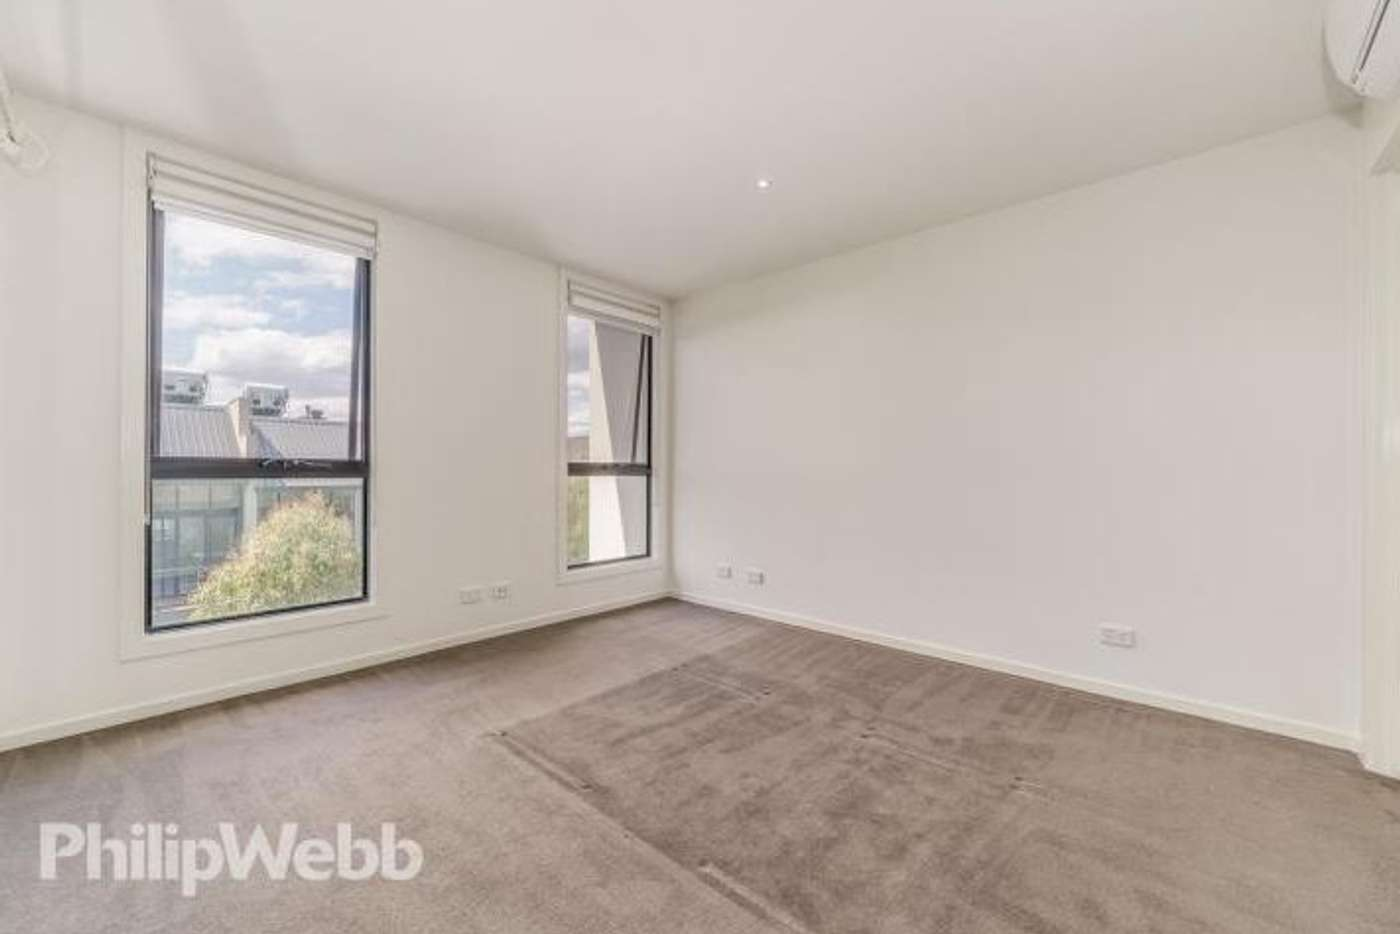 Sixth view of Homely townhouse listing, 36 Central Park Walk, Cheltenham VIC 3192